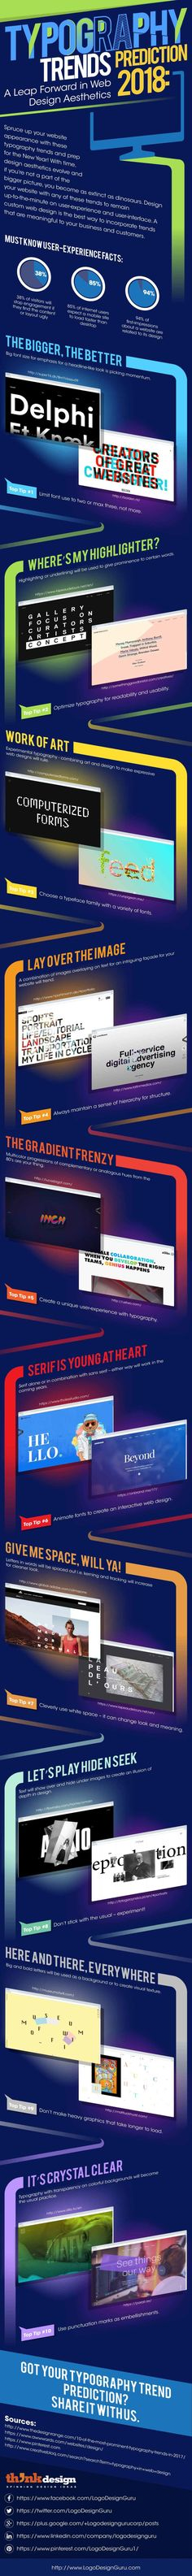 Typography-Trends-Web-Design-2018-Predictions-2a